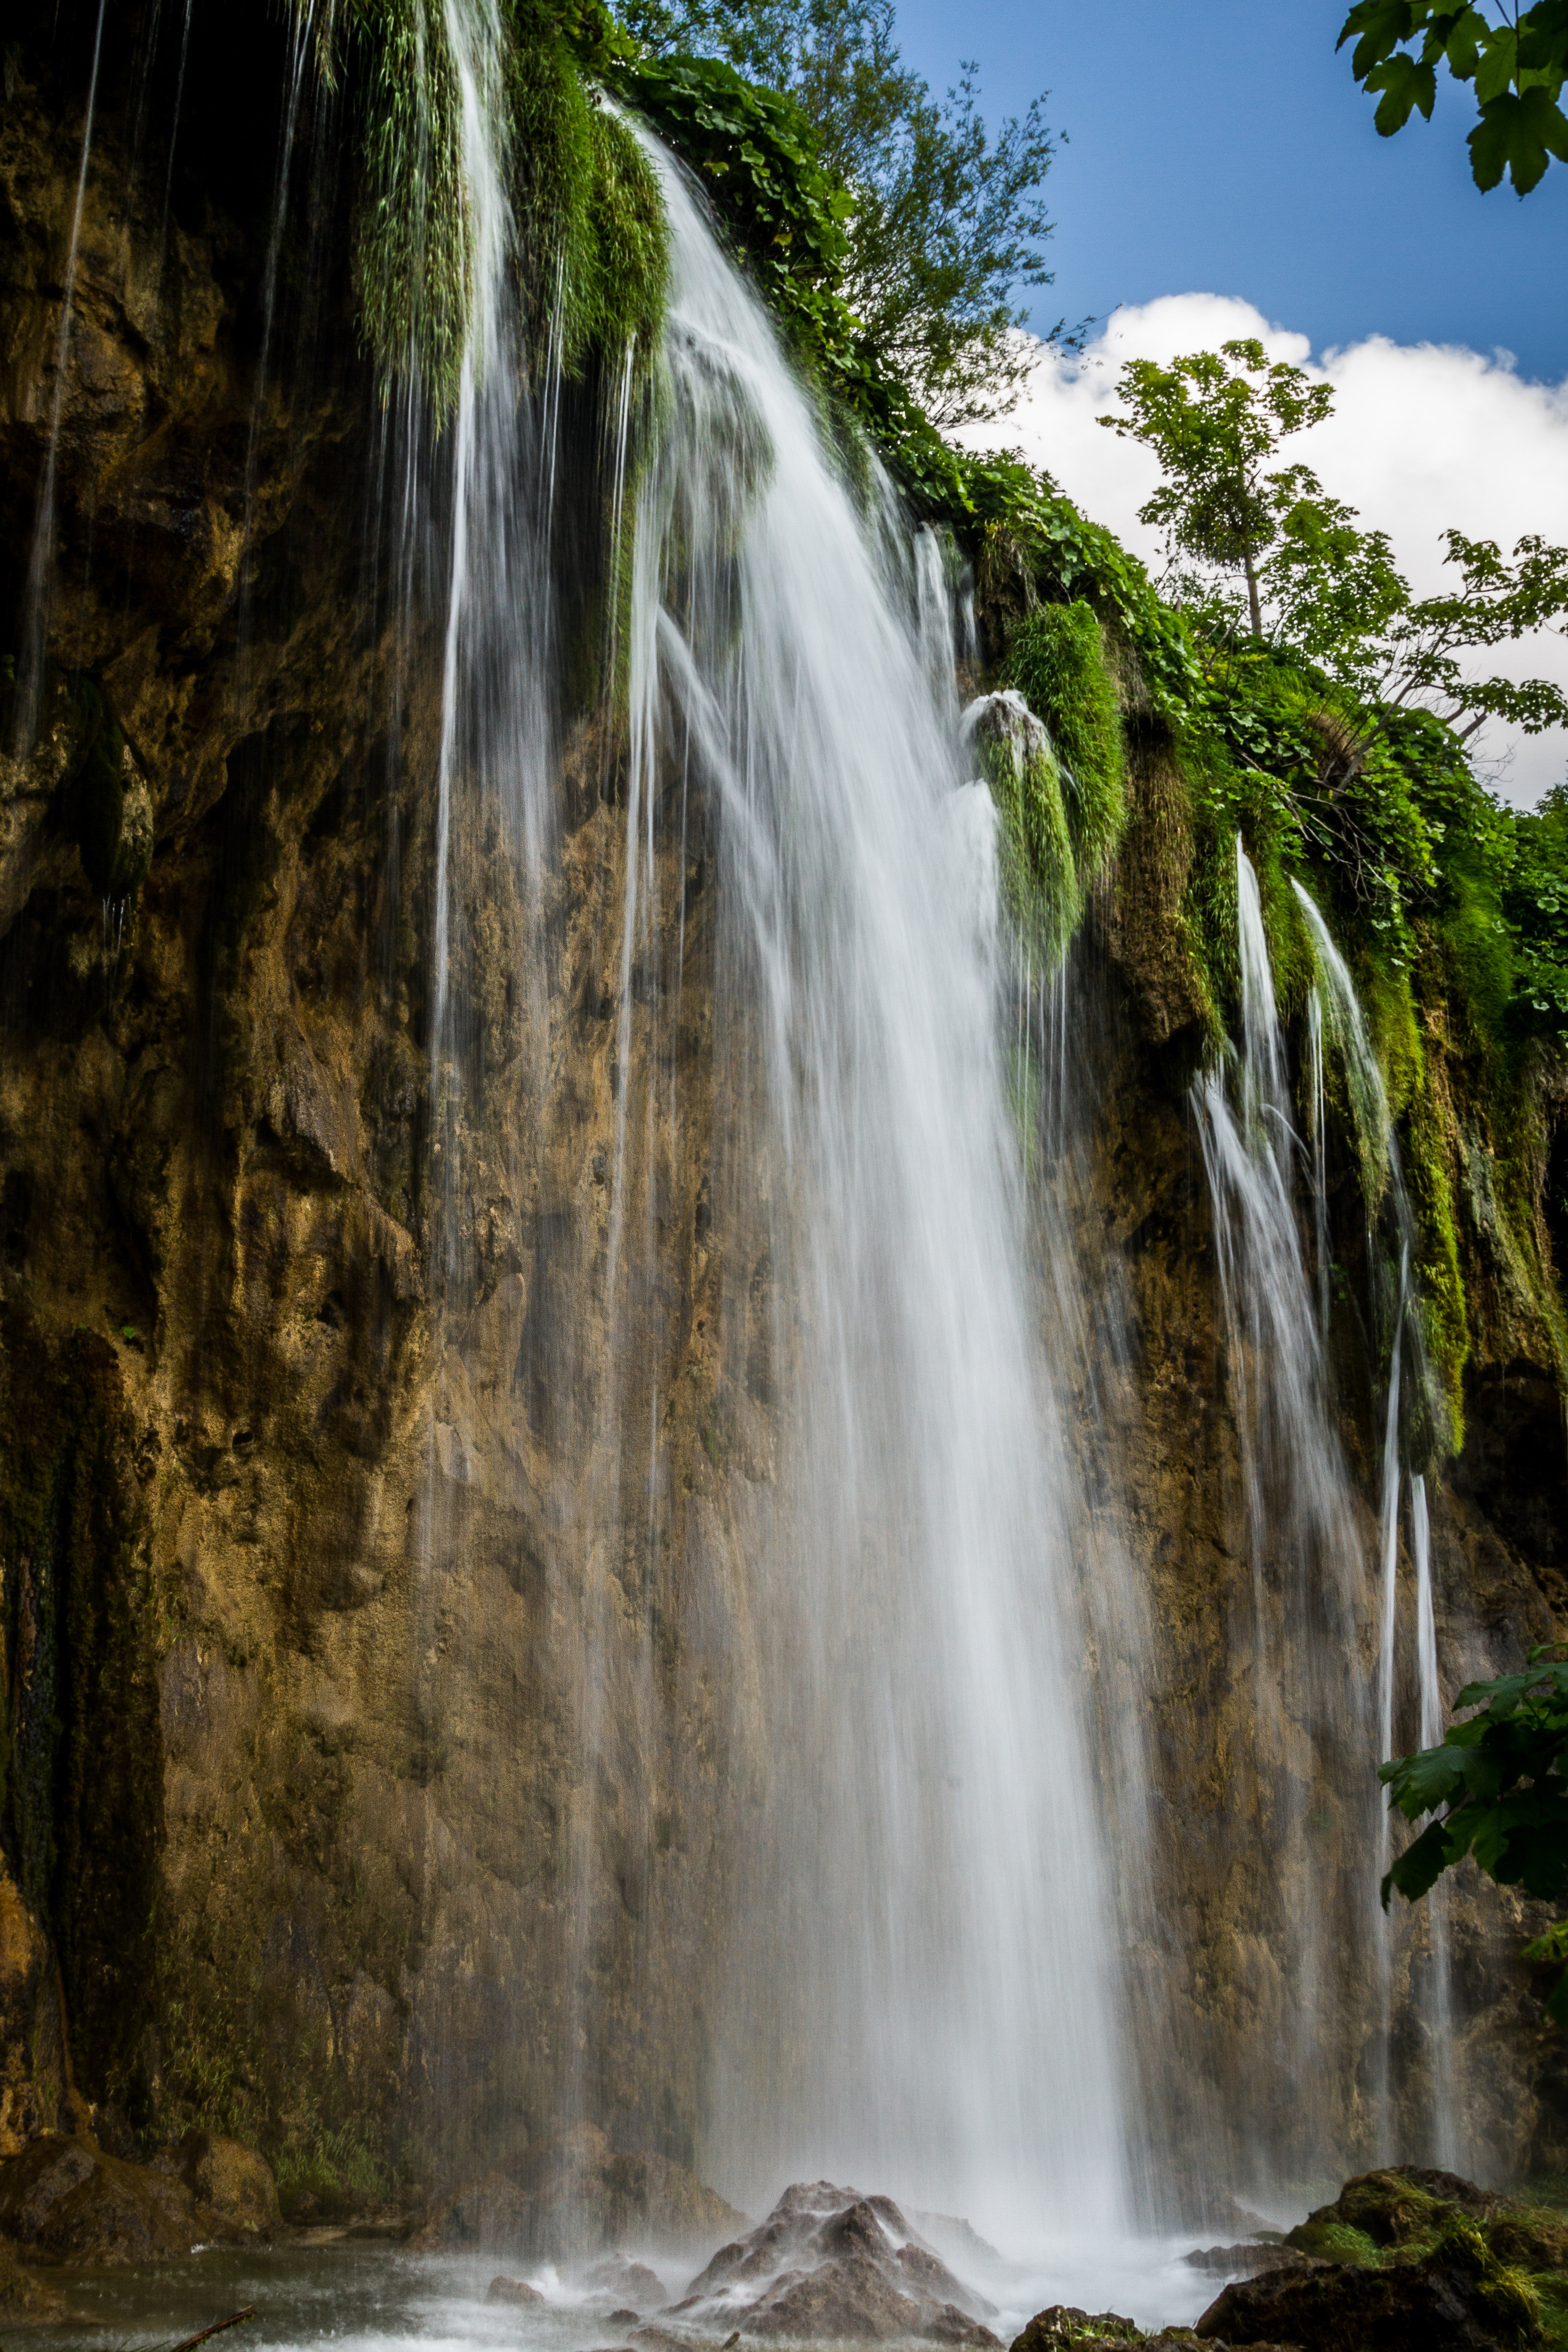 Plitvice Lakes National Park: Plitvice Lakes National Park: Best Park In Central Europe